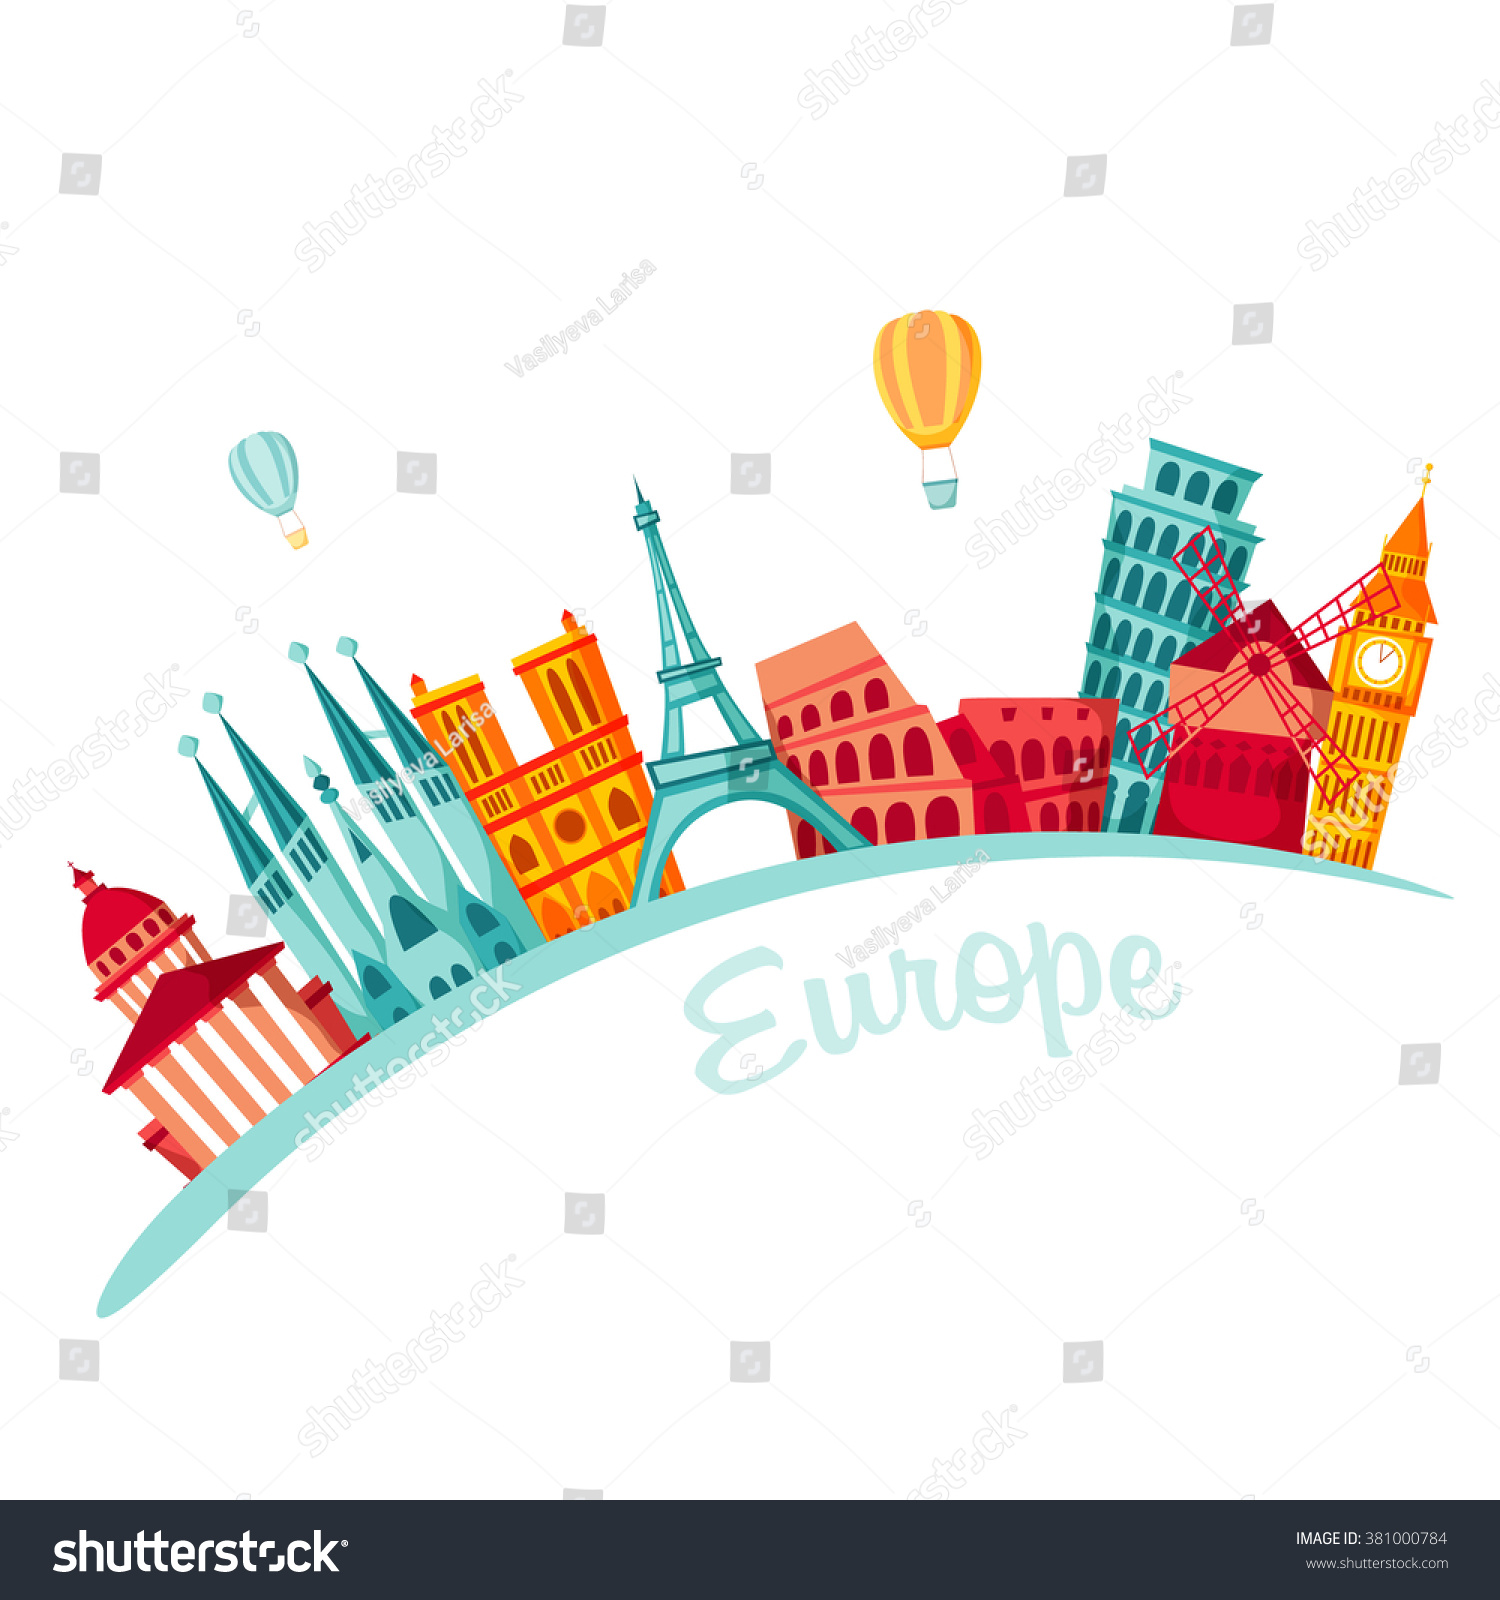 Travel and tourism in Europe - Statistics & Facts